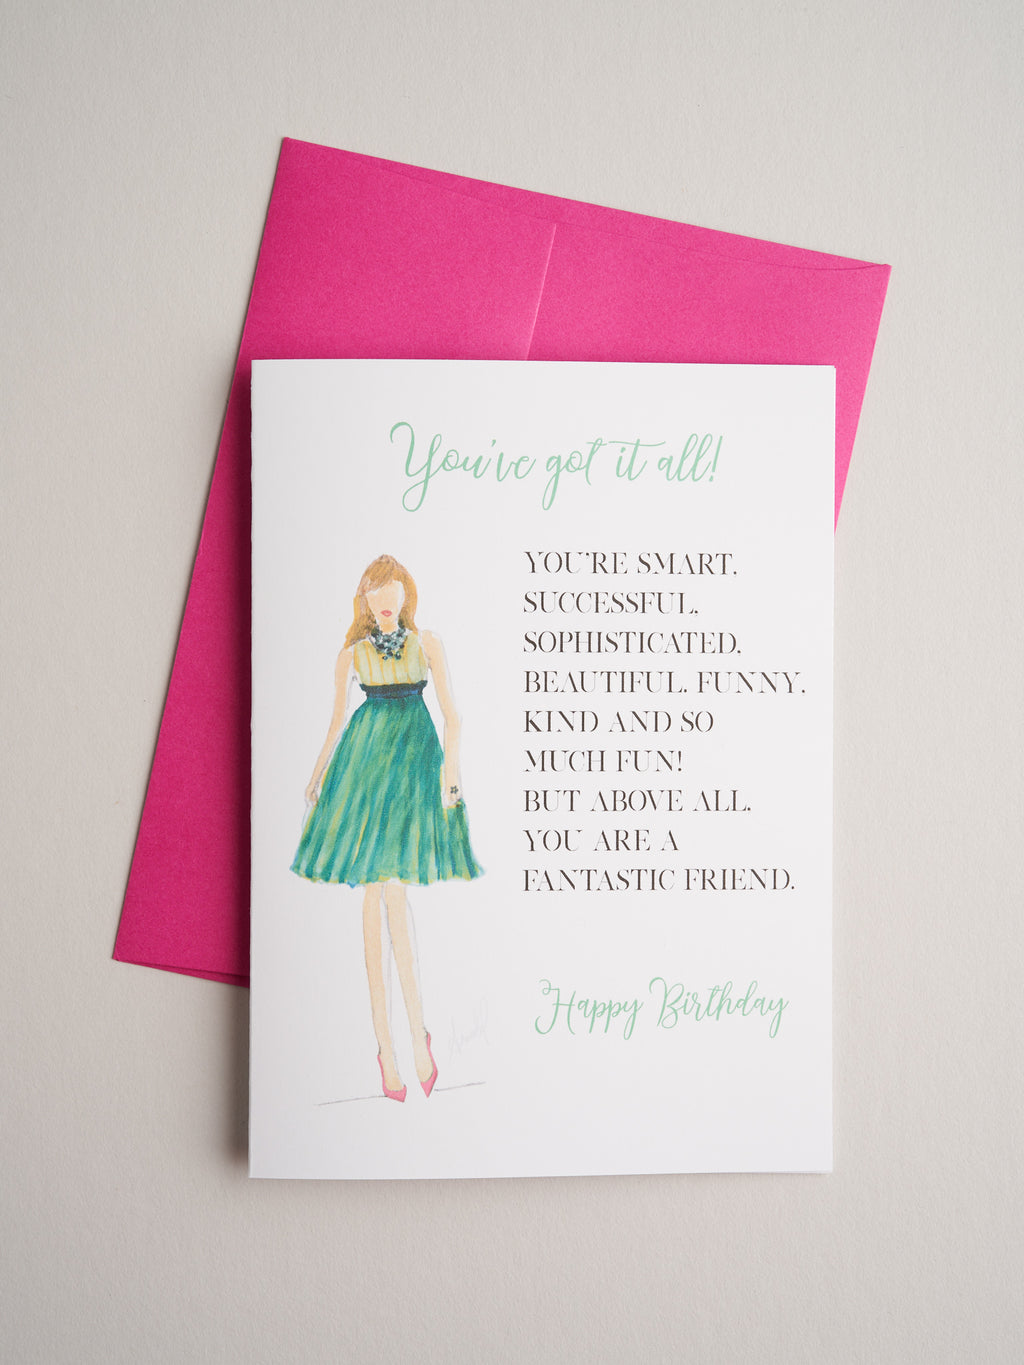 BD-14-30 | Fantastic - Greeting Cards - Queen & Grace